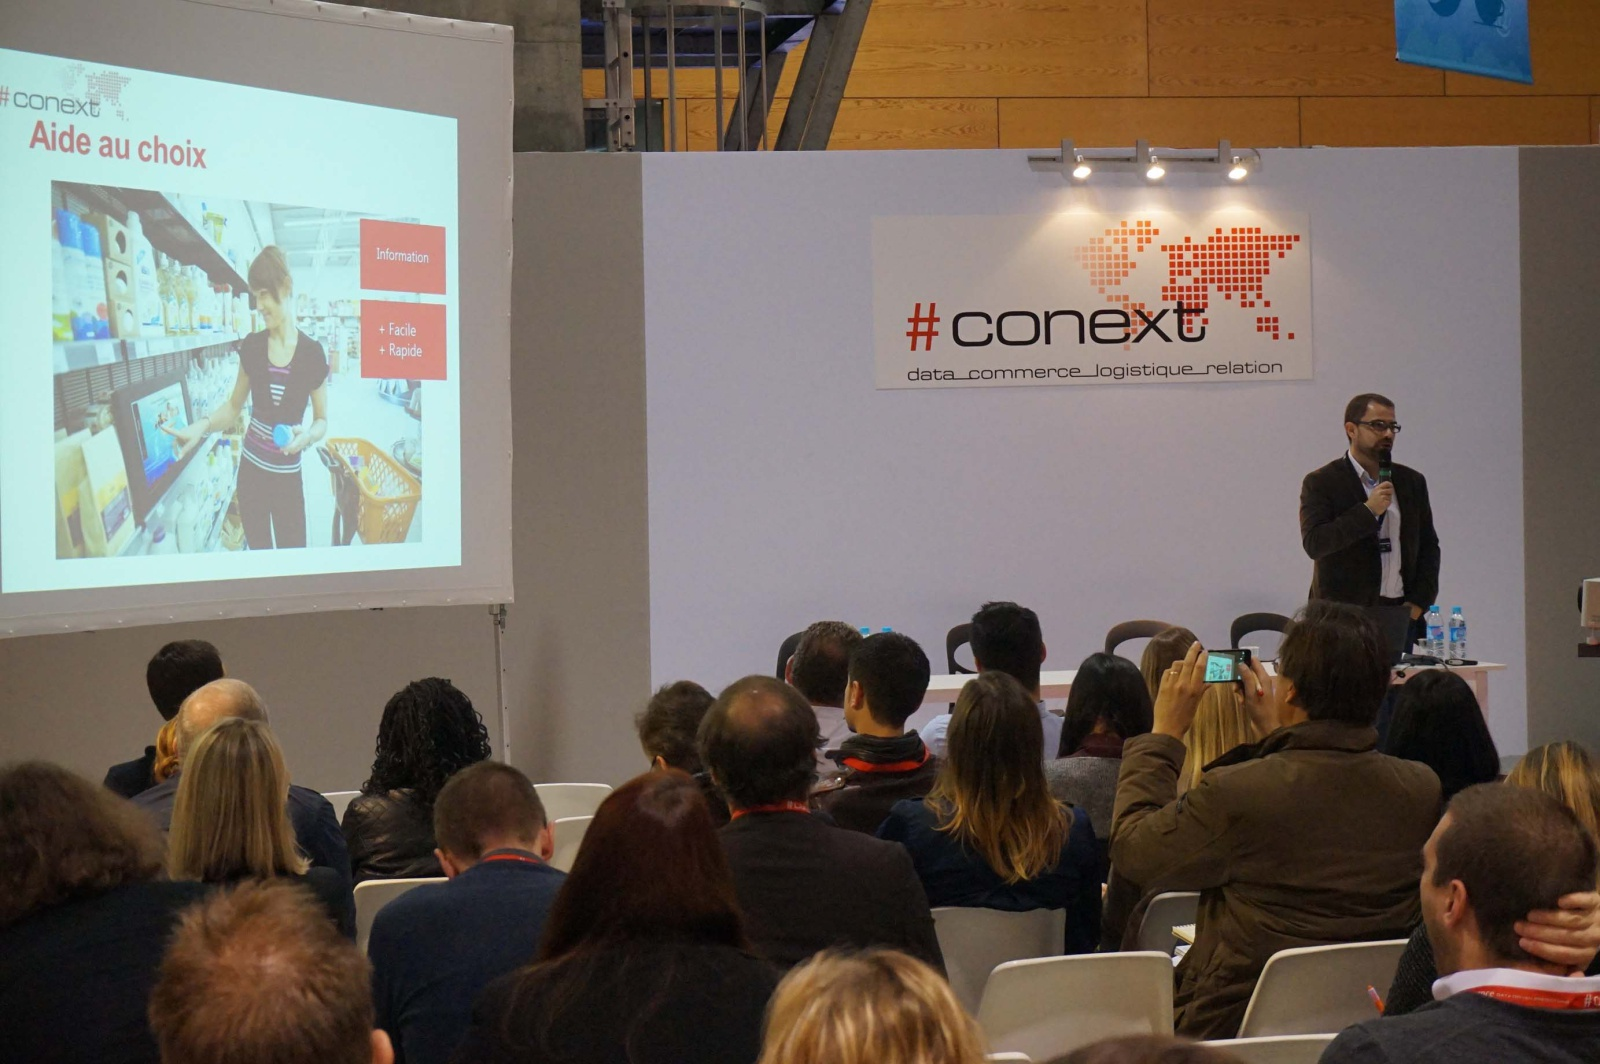 salon conext conference commerce connecte ipmfrance